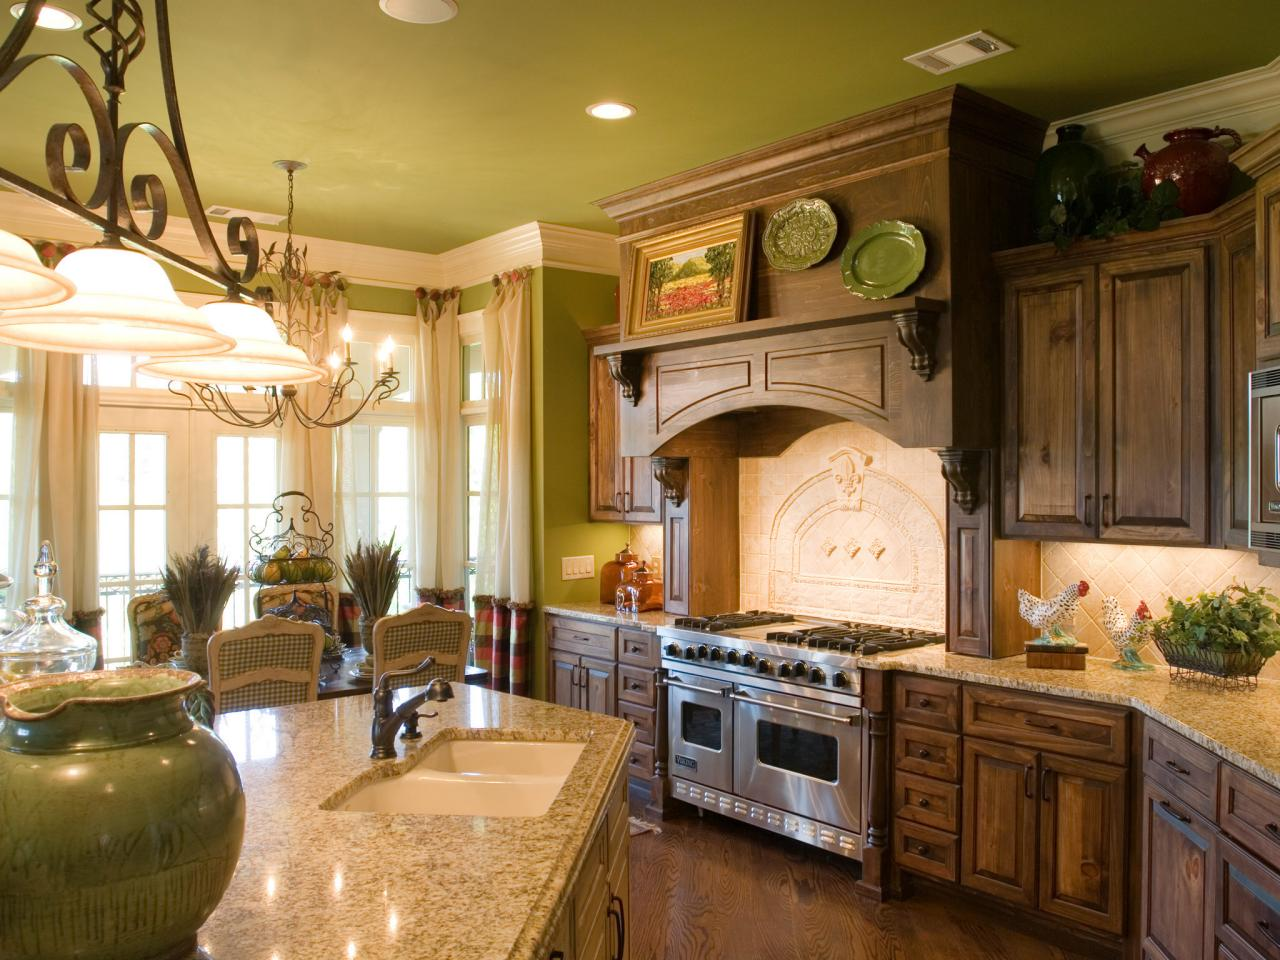 French country kitchen cabinets pictures ideas from - Country style kitchen cabinets design ...